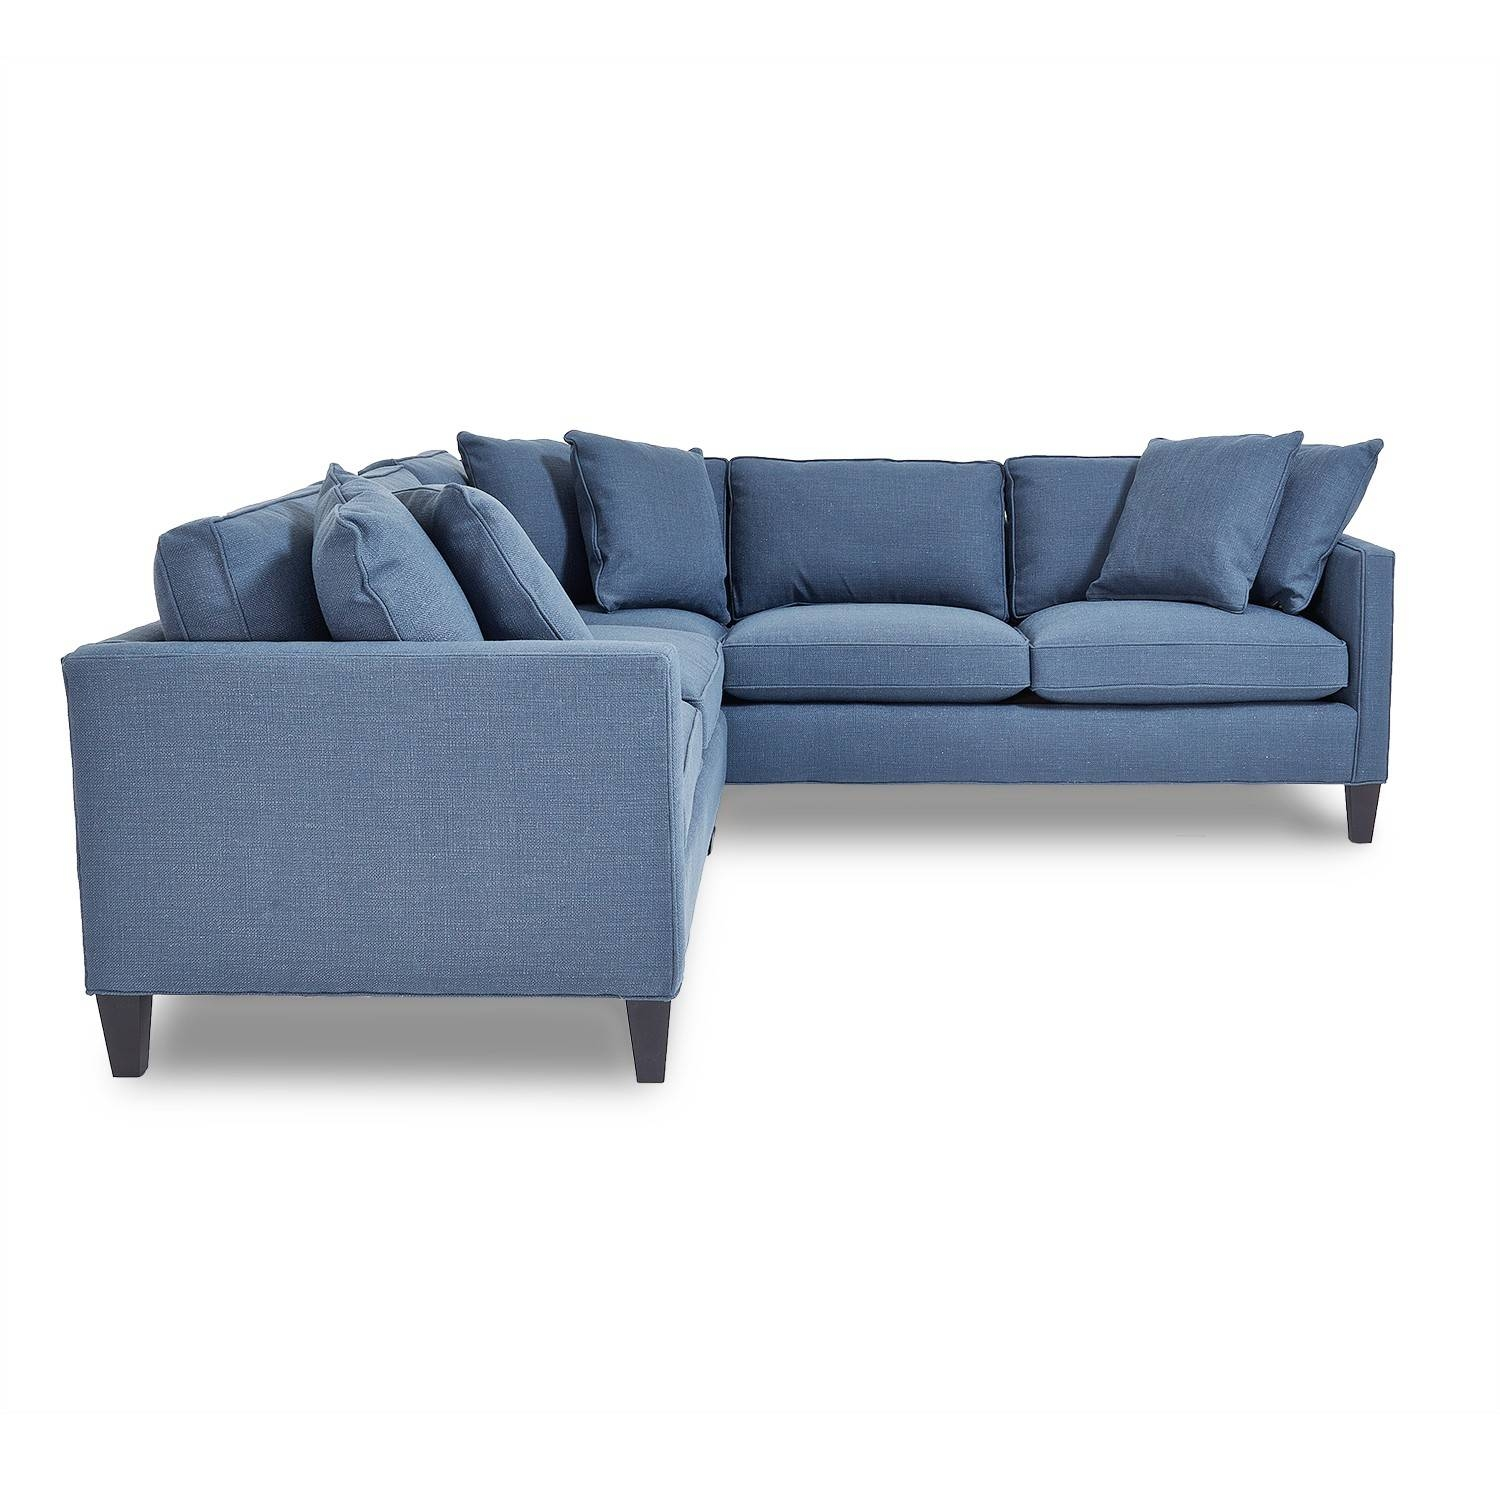 Living Room: Exciting Denim Sectional Sofa Design For Living Room Throughout 3 Piece Sectional Sleeper Sofa (View 21 of 30)